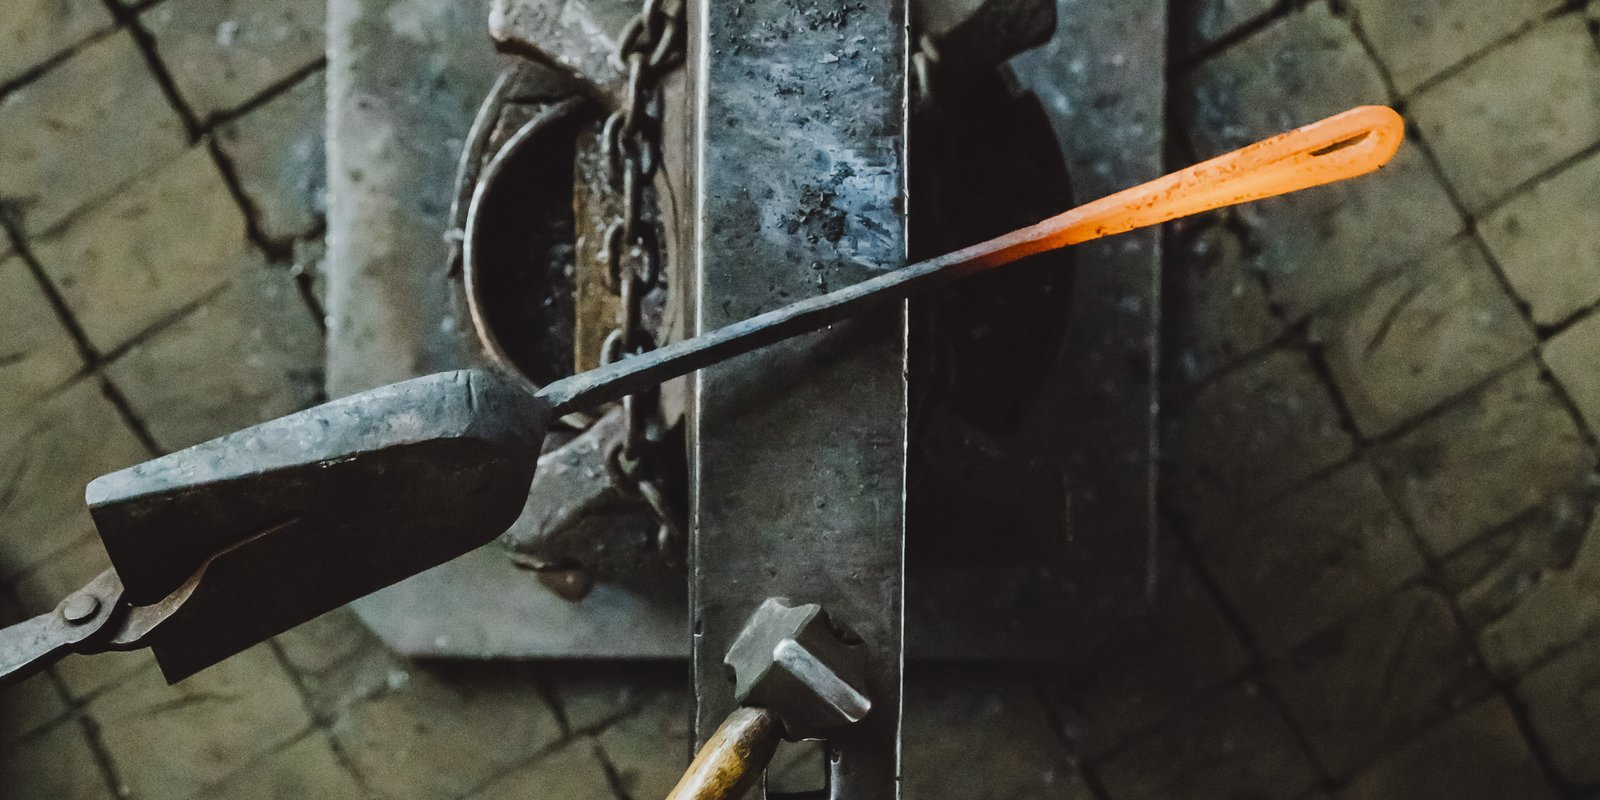 Photo 1 of 14 in Meet a Seasoned Blacksmith Who Reveals His Art's Painstaking Process